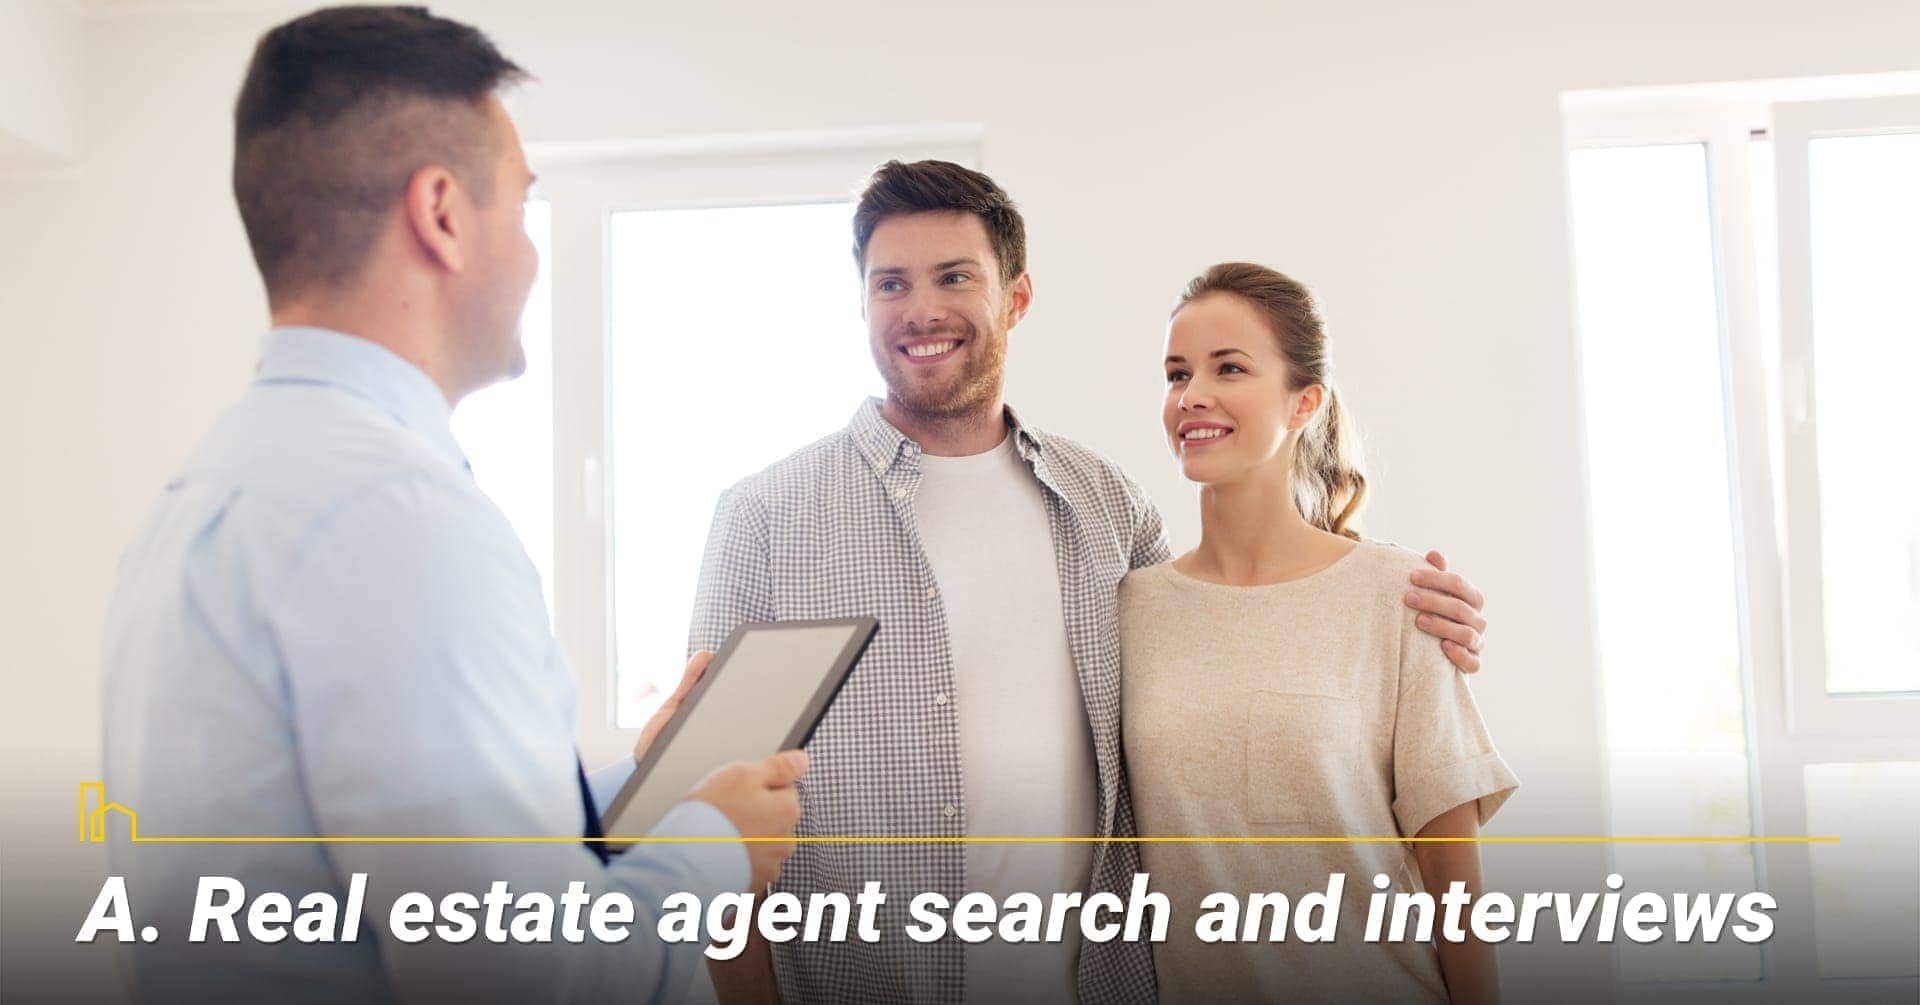 Real estate agent search and interviews